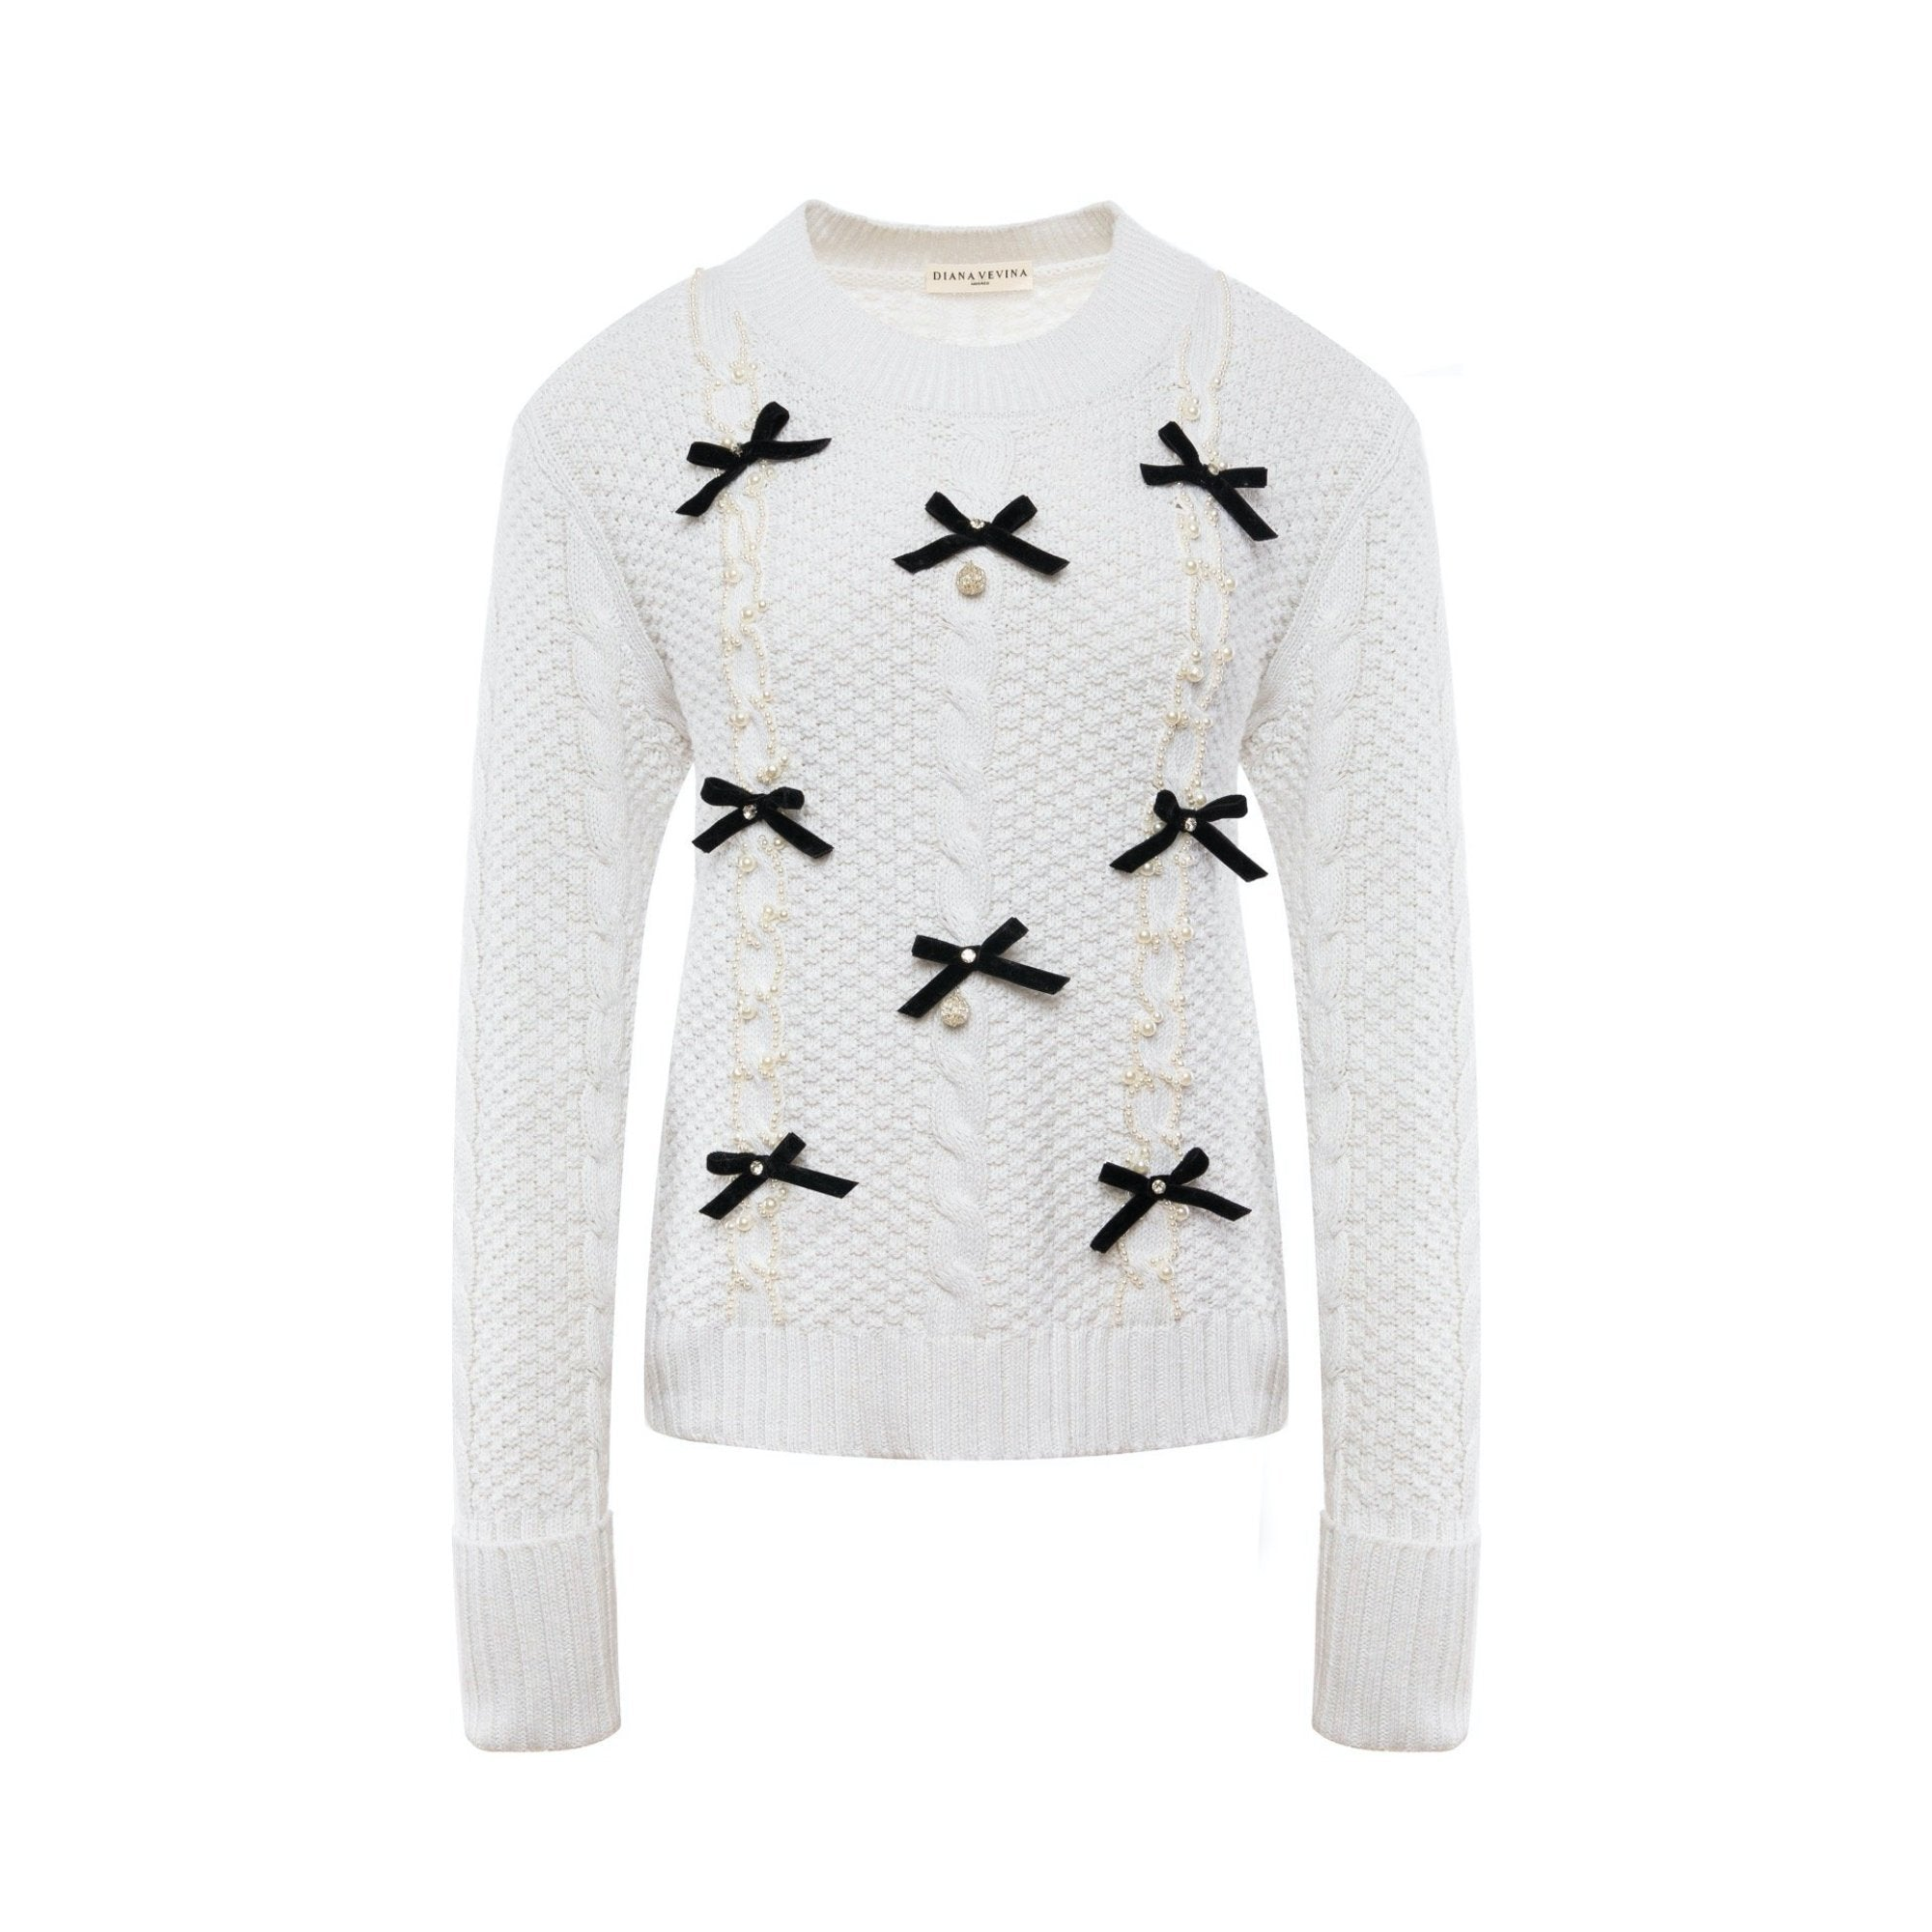 DIANA VEVINA White Bowtie Sweatshirt | MADA IN CHINA